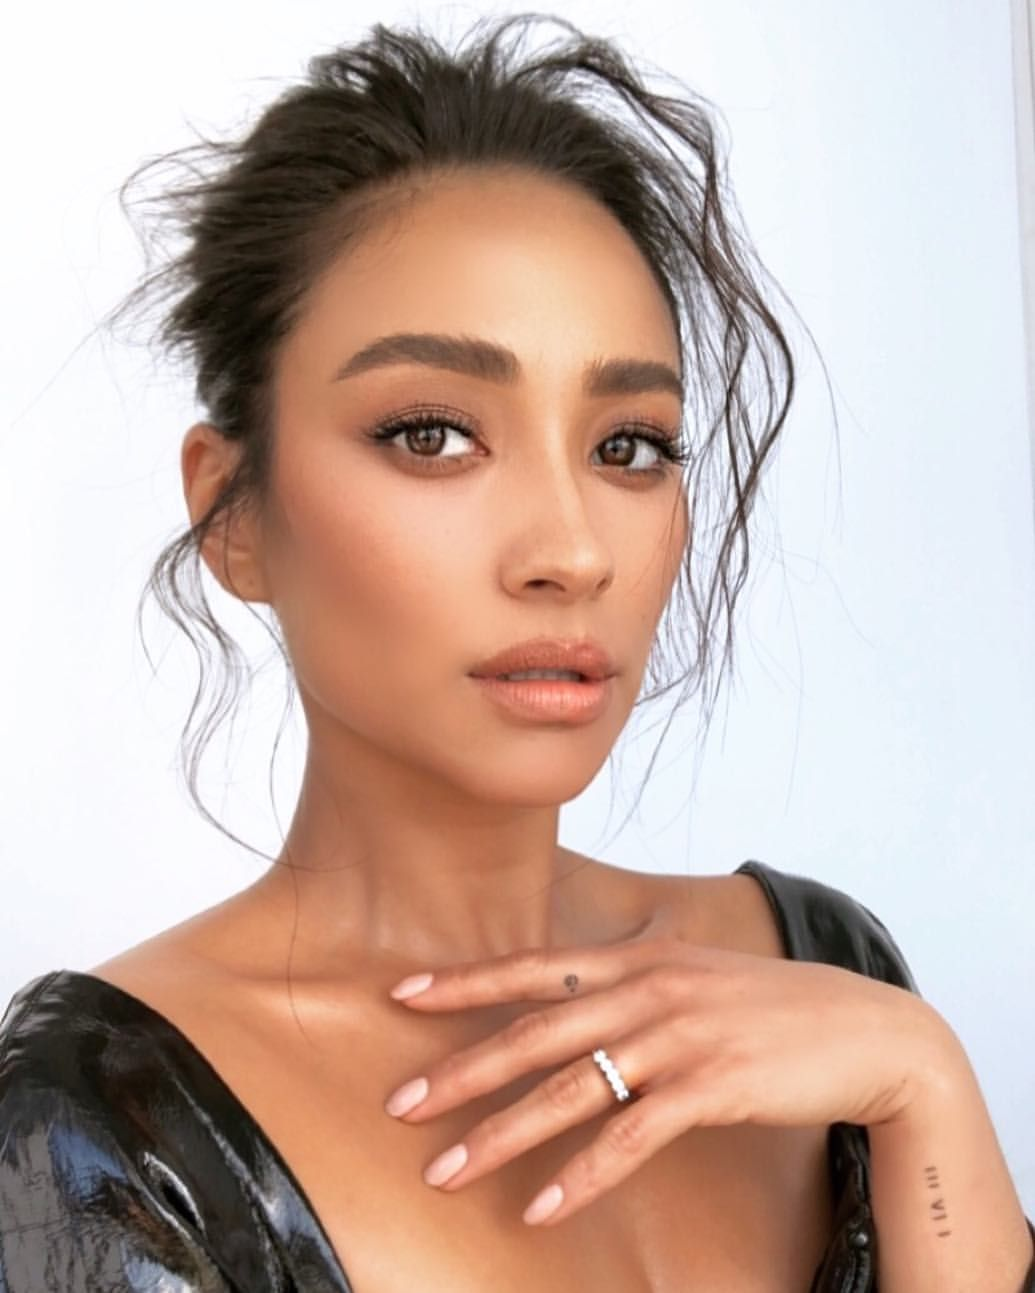 Pin By Shay On Hallway In 2019: Shay Mitchell Makeup